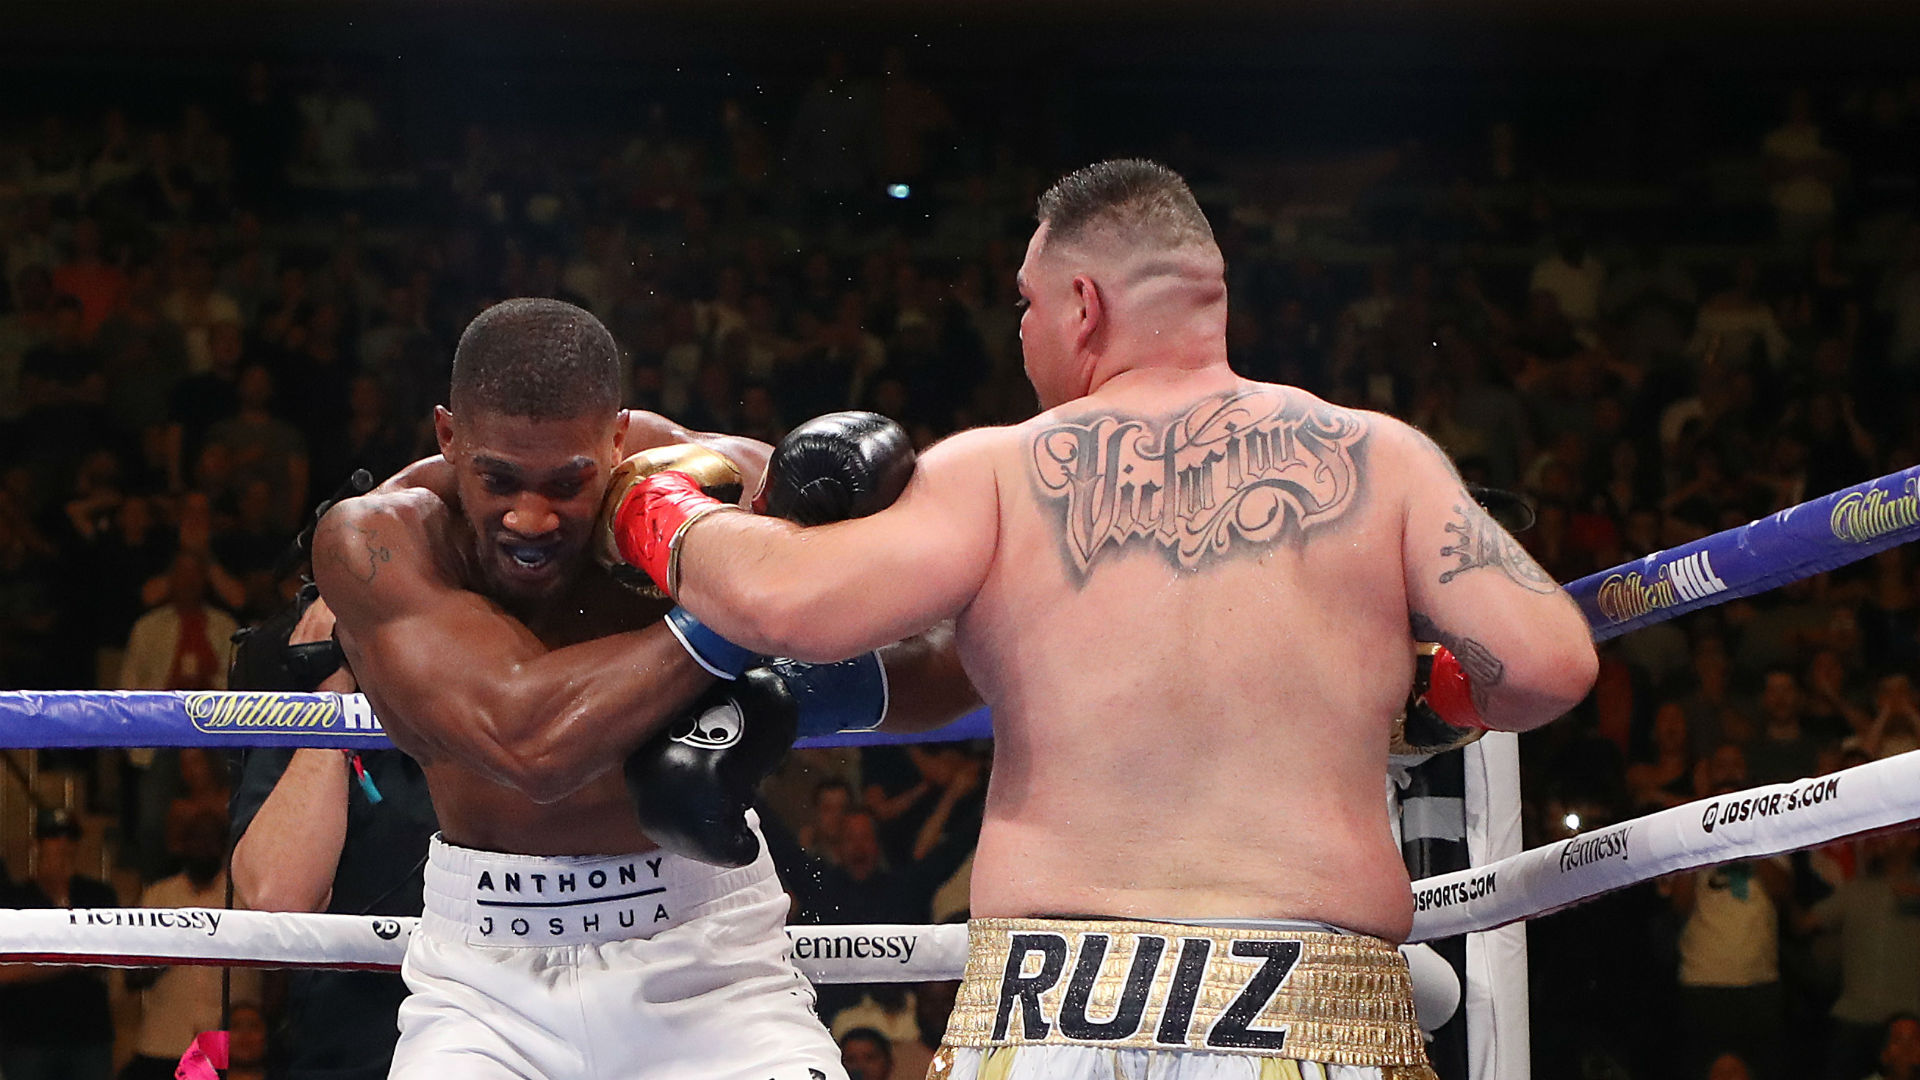 Anthony Joshua wants to rediscover passion before Andy Ruiz rematch